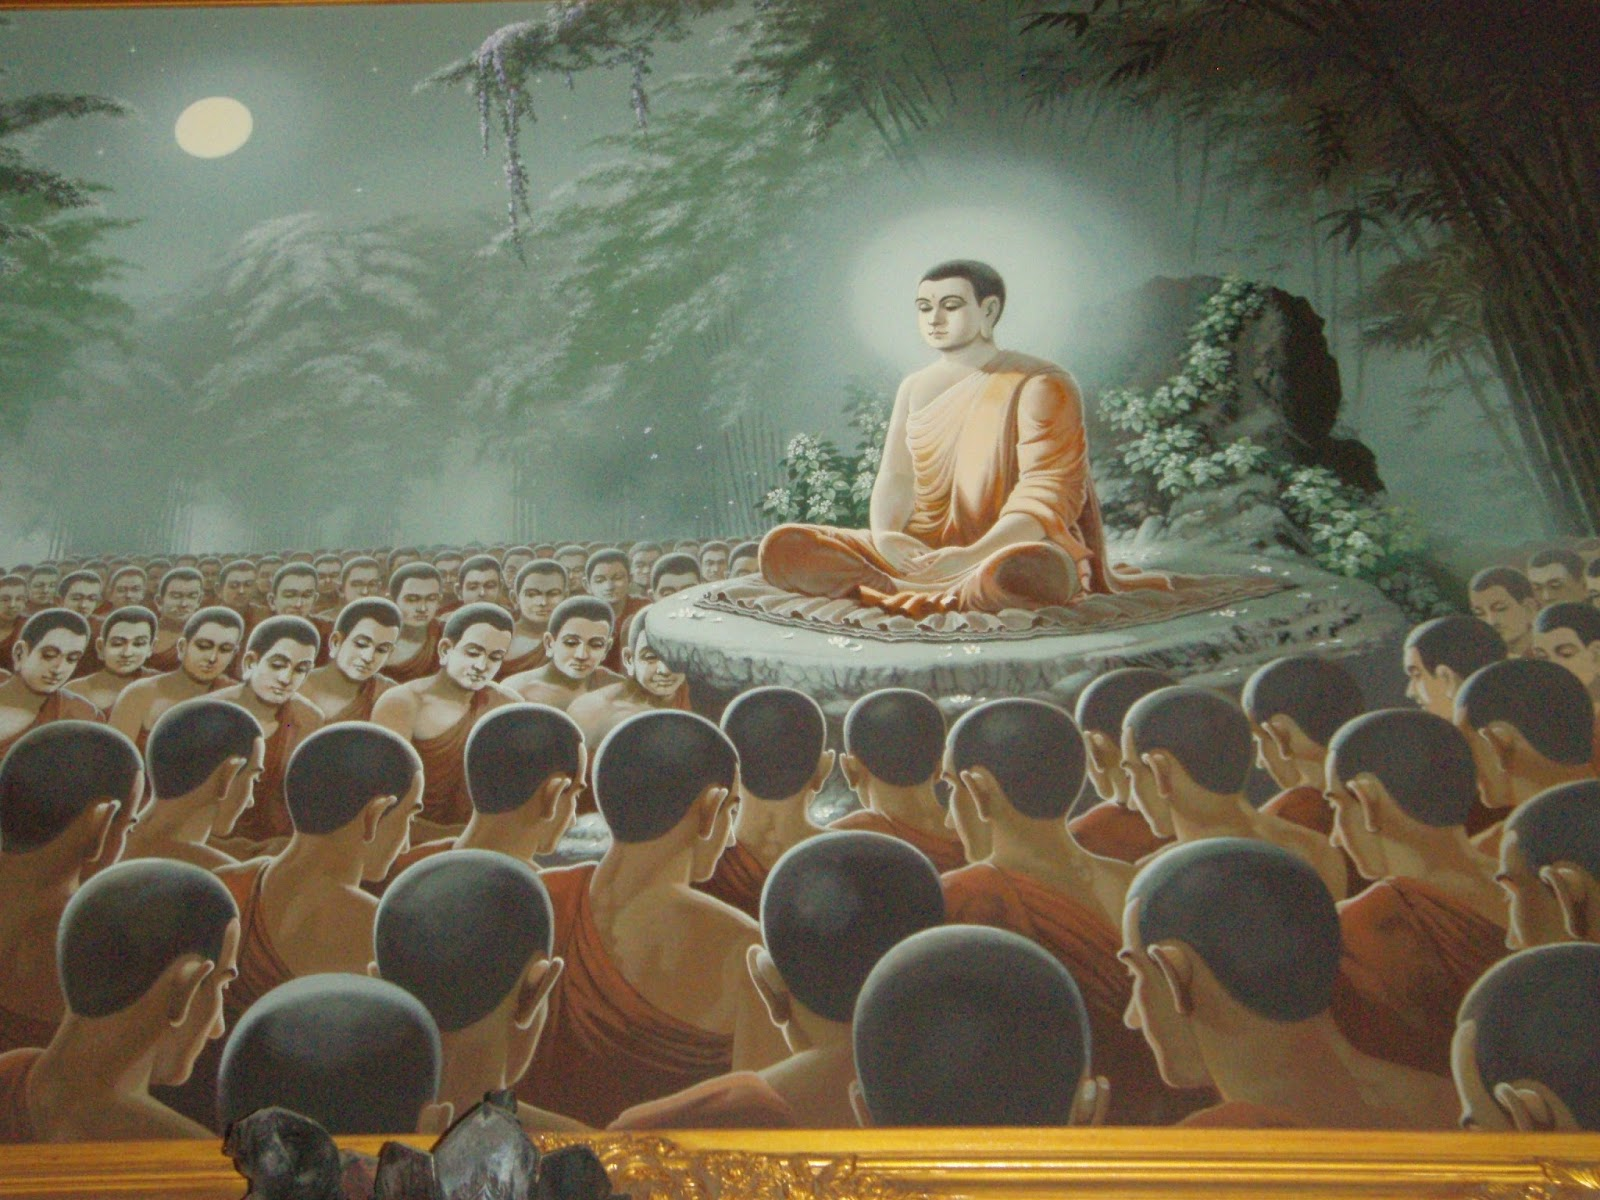 a brief overview of buddhism The buddha, or siddhartha gautama, achieved enlightenment through meditation and his doctrines became the foundation for buddhism learn more at biographycom.